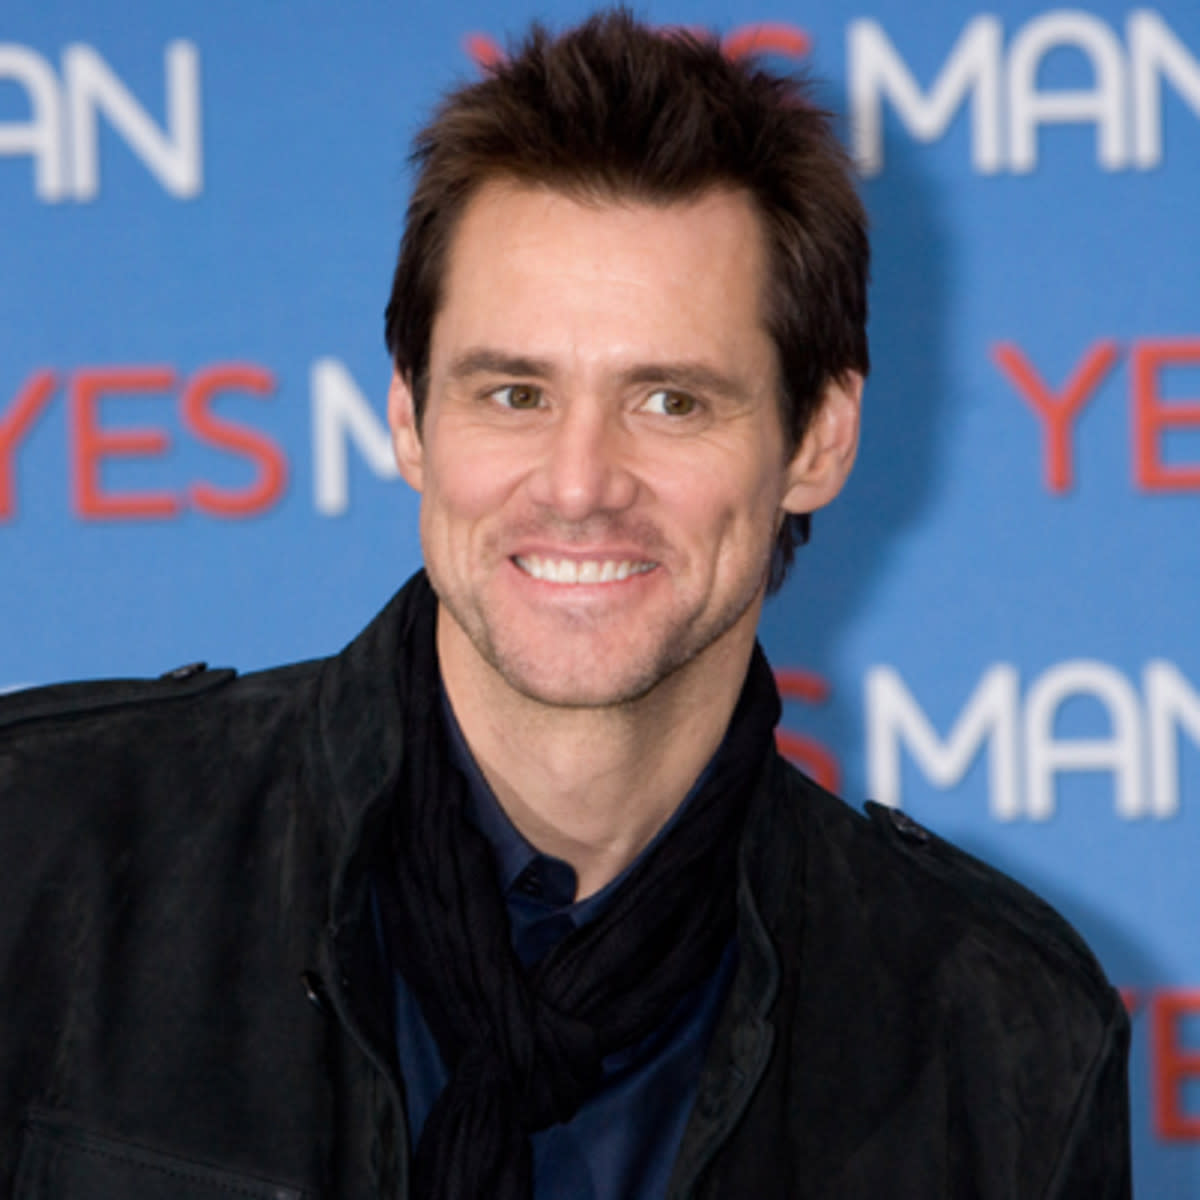 Top 9 Movies for Jim Carrey Fans